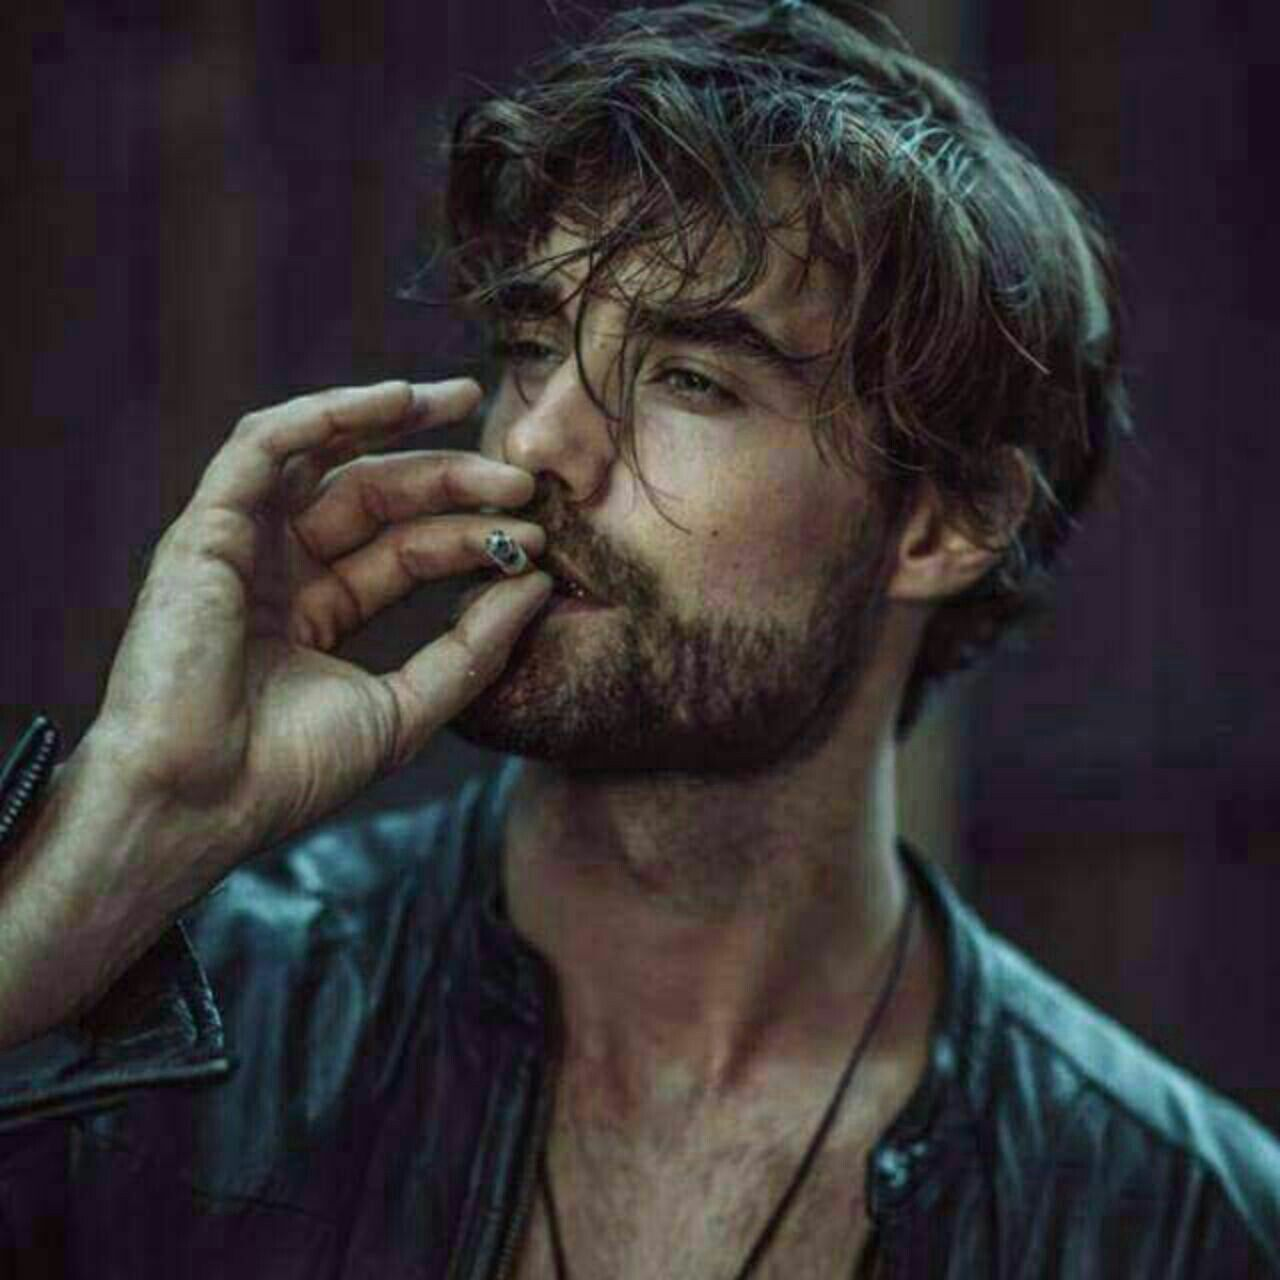 Pin By Megan Denman On Hair Beautiful Men Faces Character Inspiration Male Poses For Men